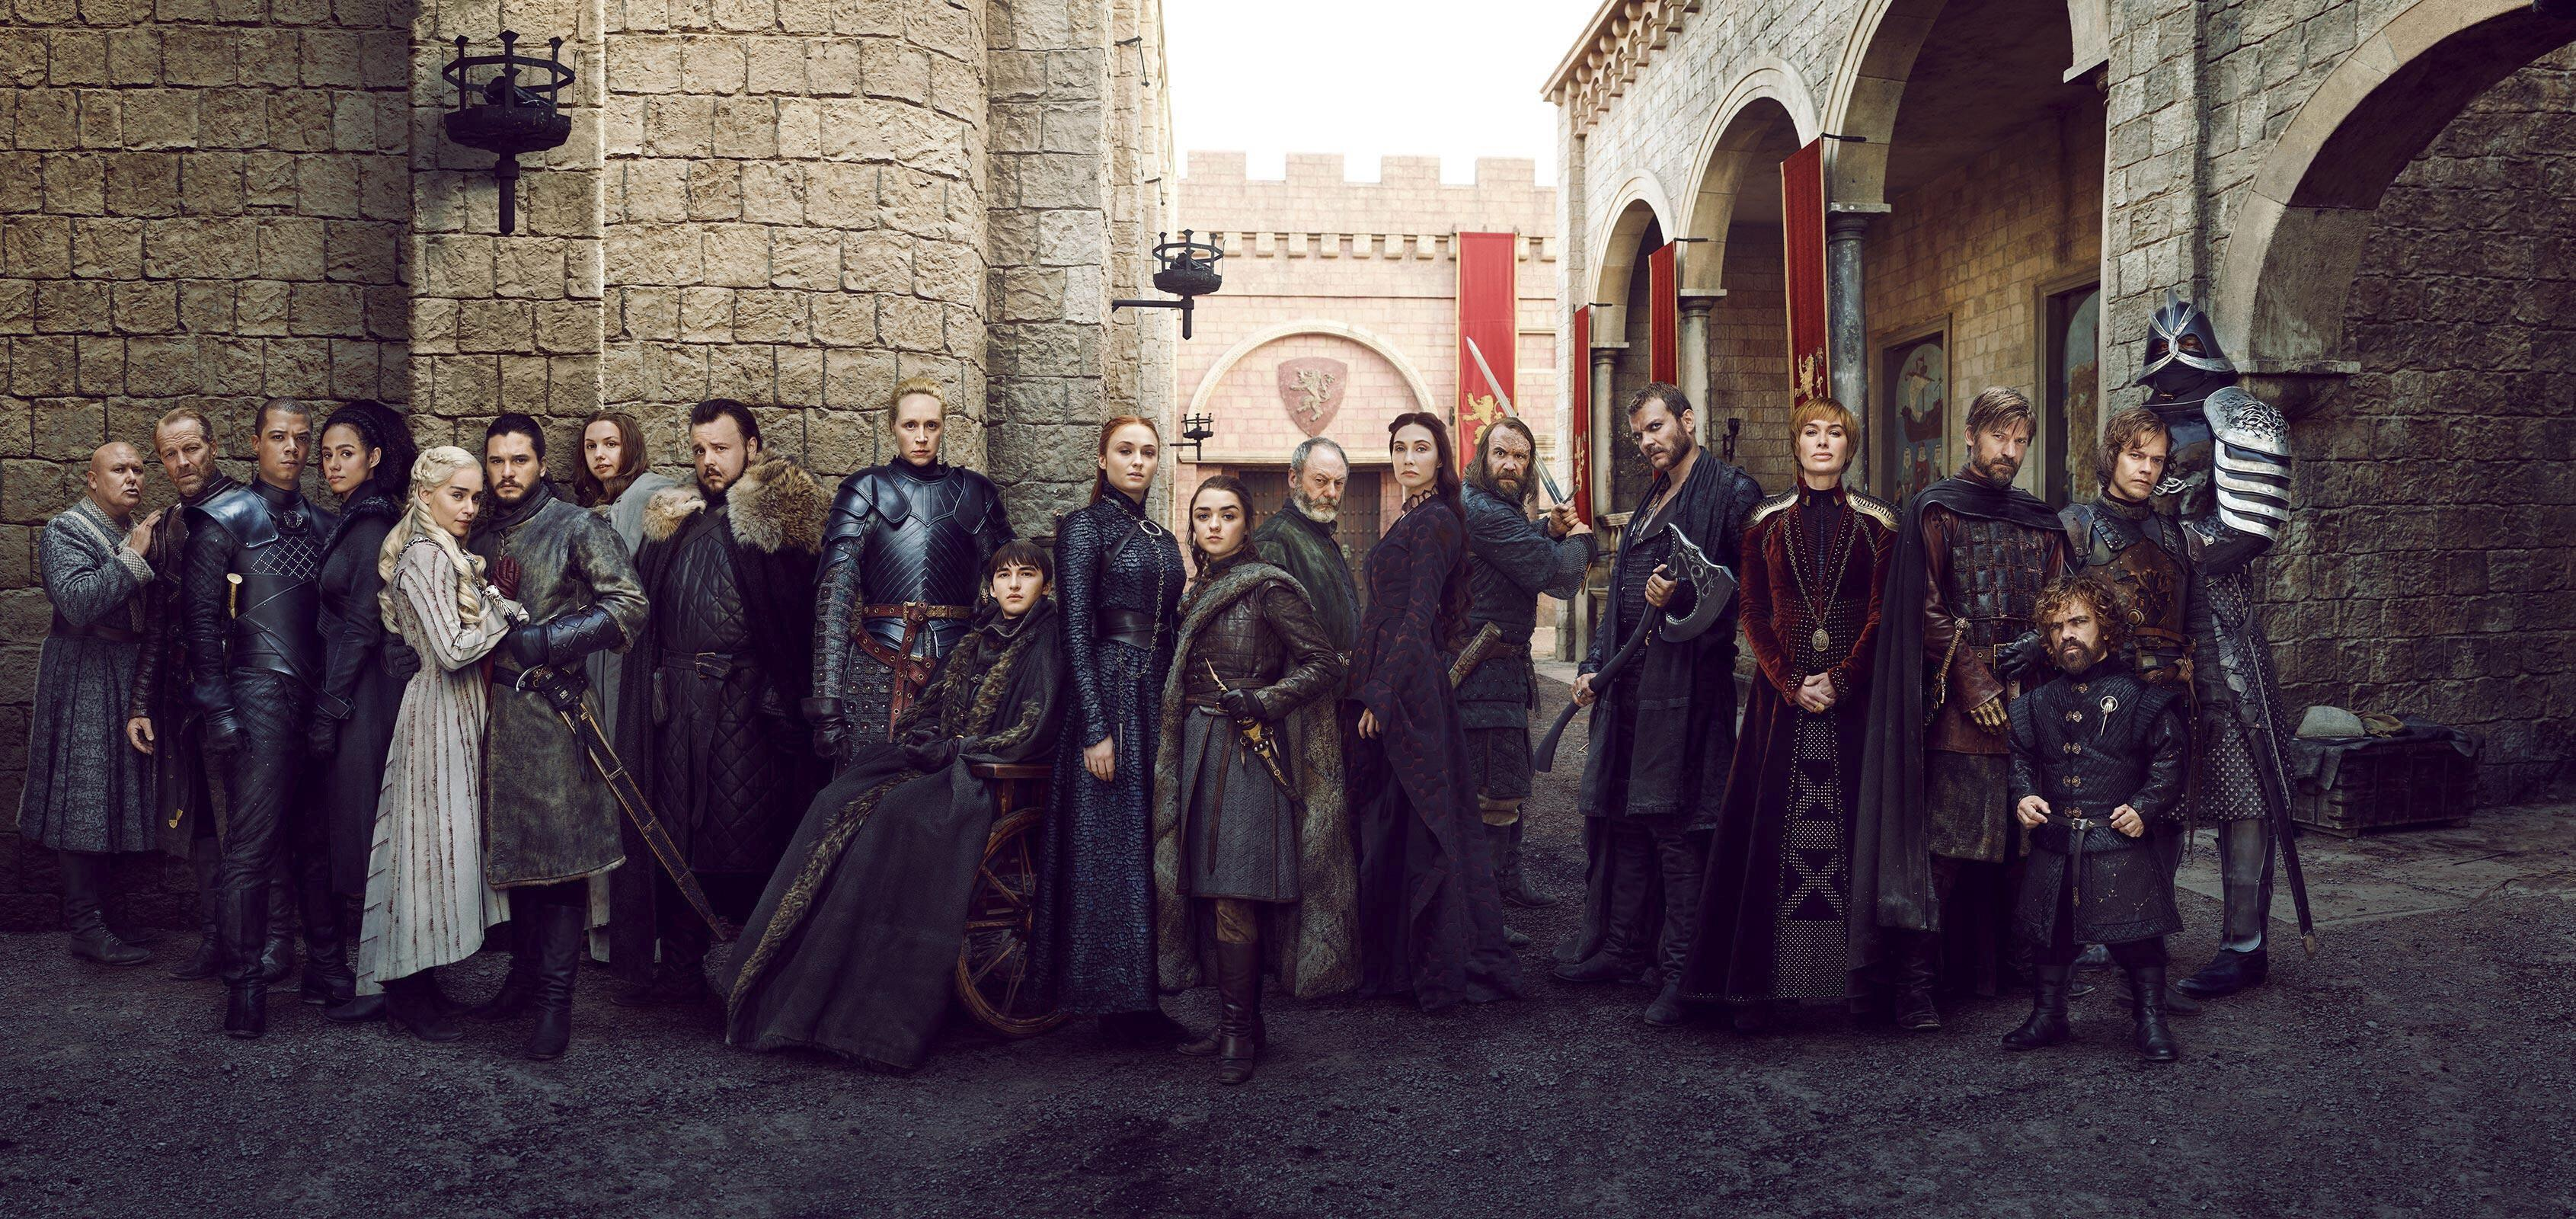 Game Of Thrones Season 8 Cast - HD Wallpaper